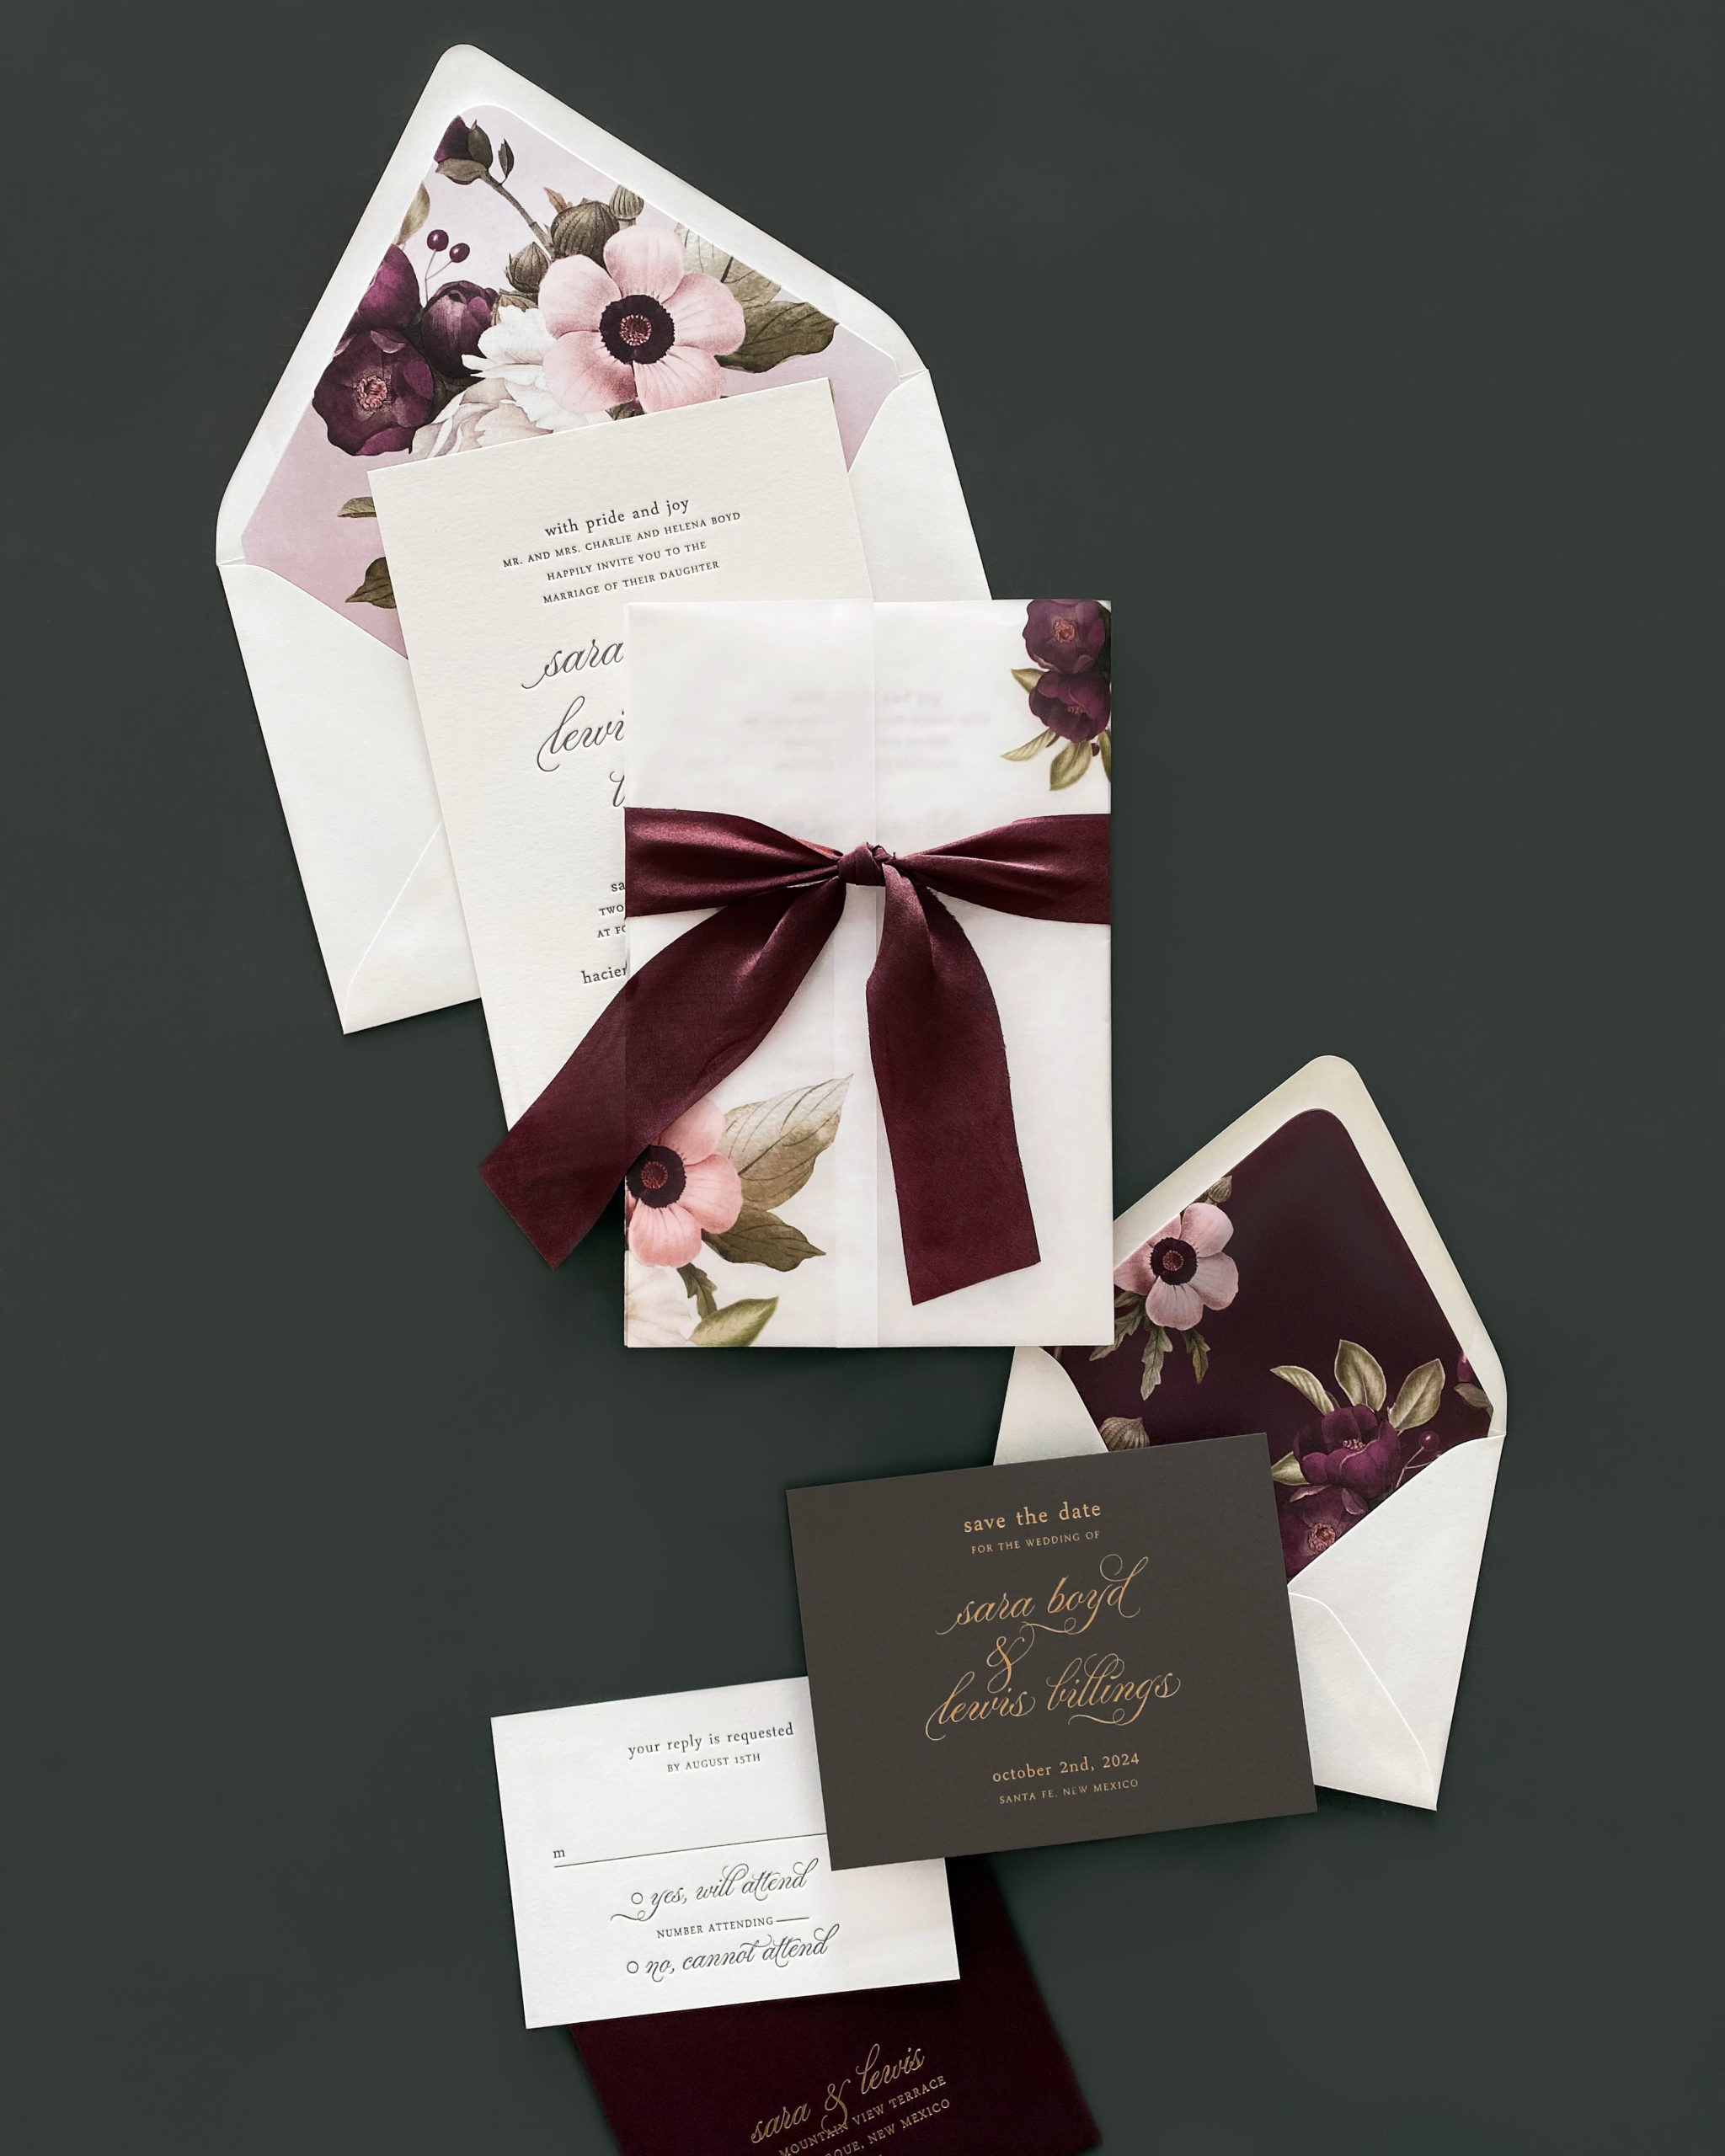 romantic floral spray in blush and burgundy accents this stunning letterpress wedding invitation that features a vellum band, hand-dyed silk ribbon, and a beautiful envelope liner.